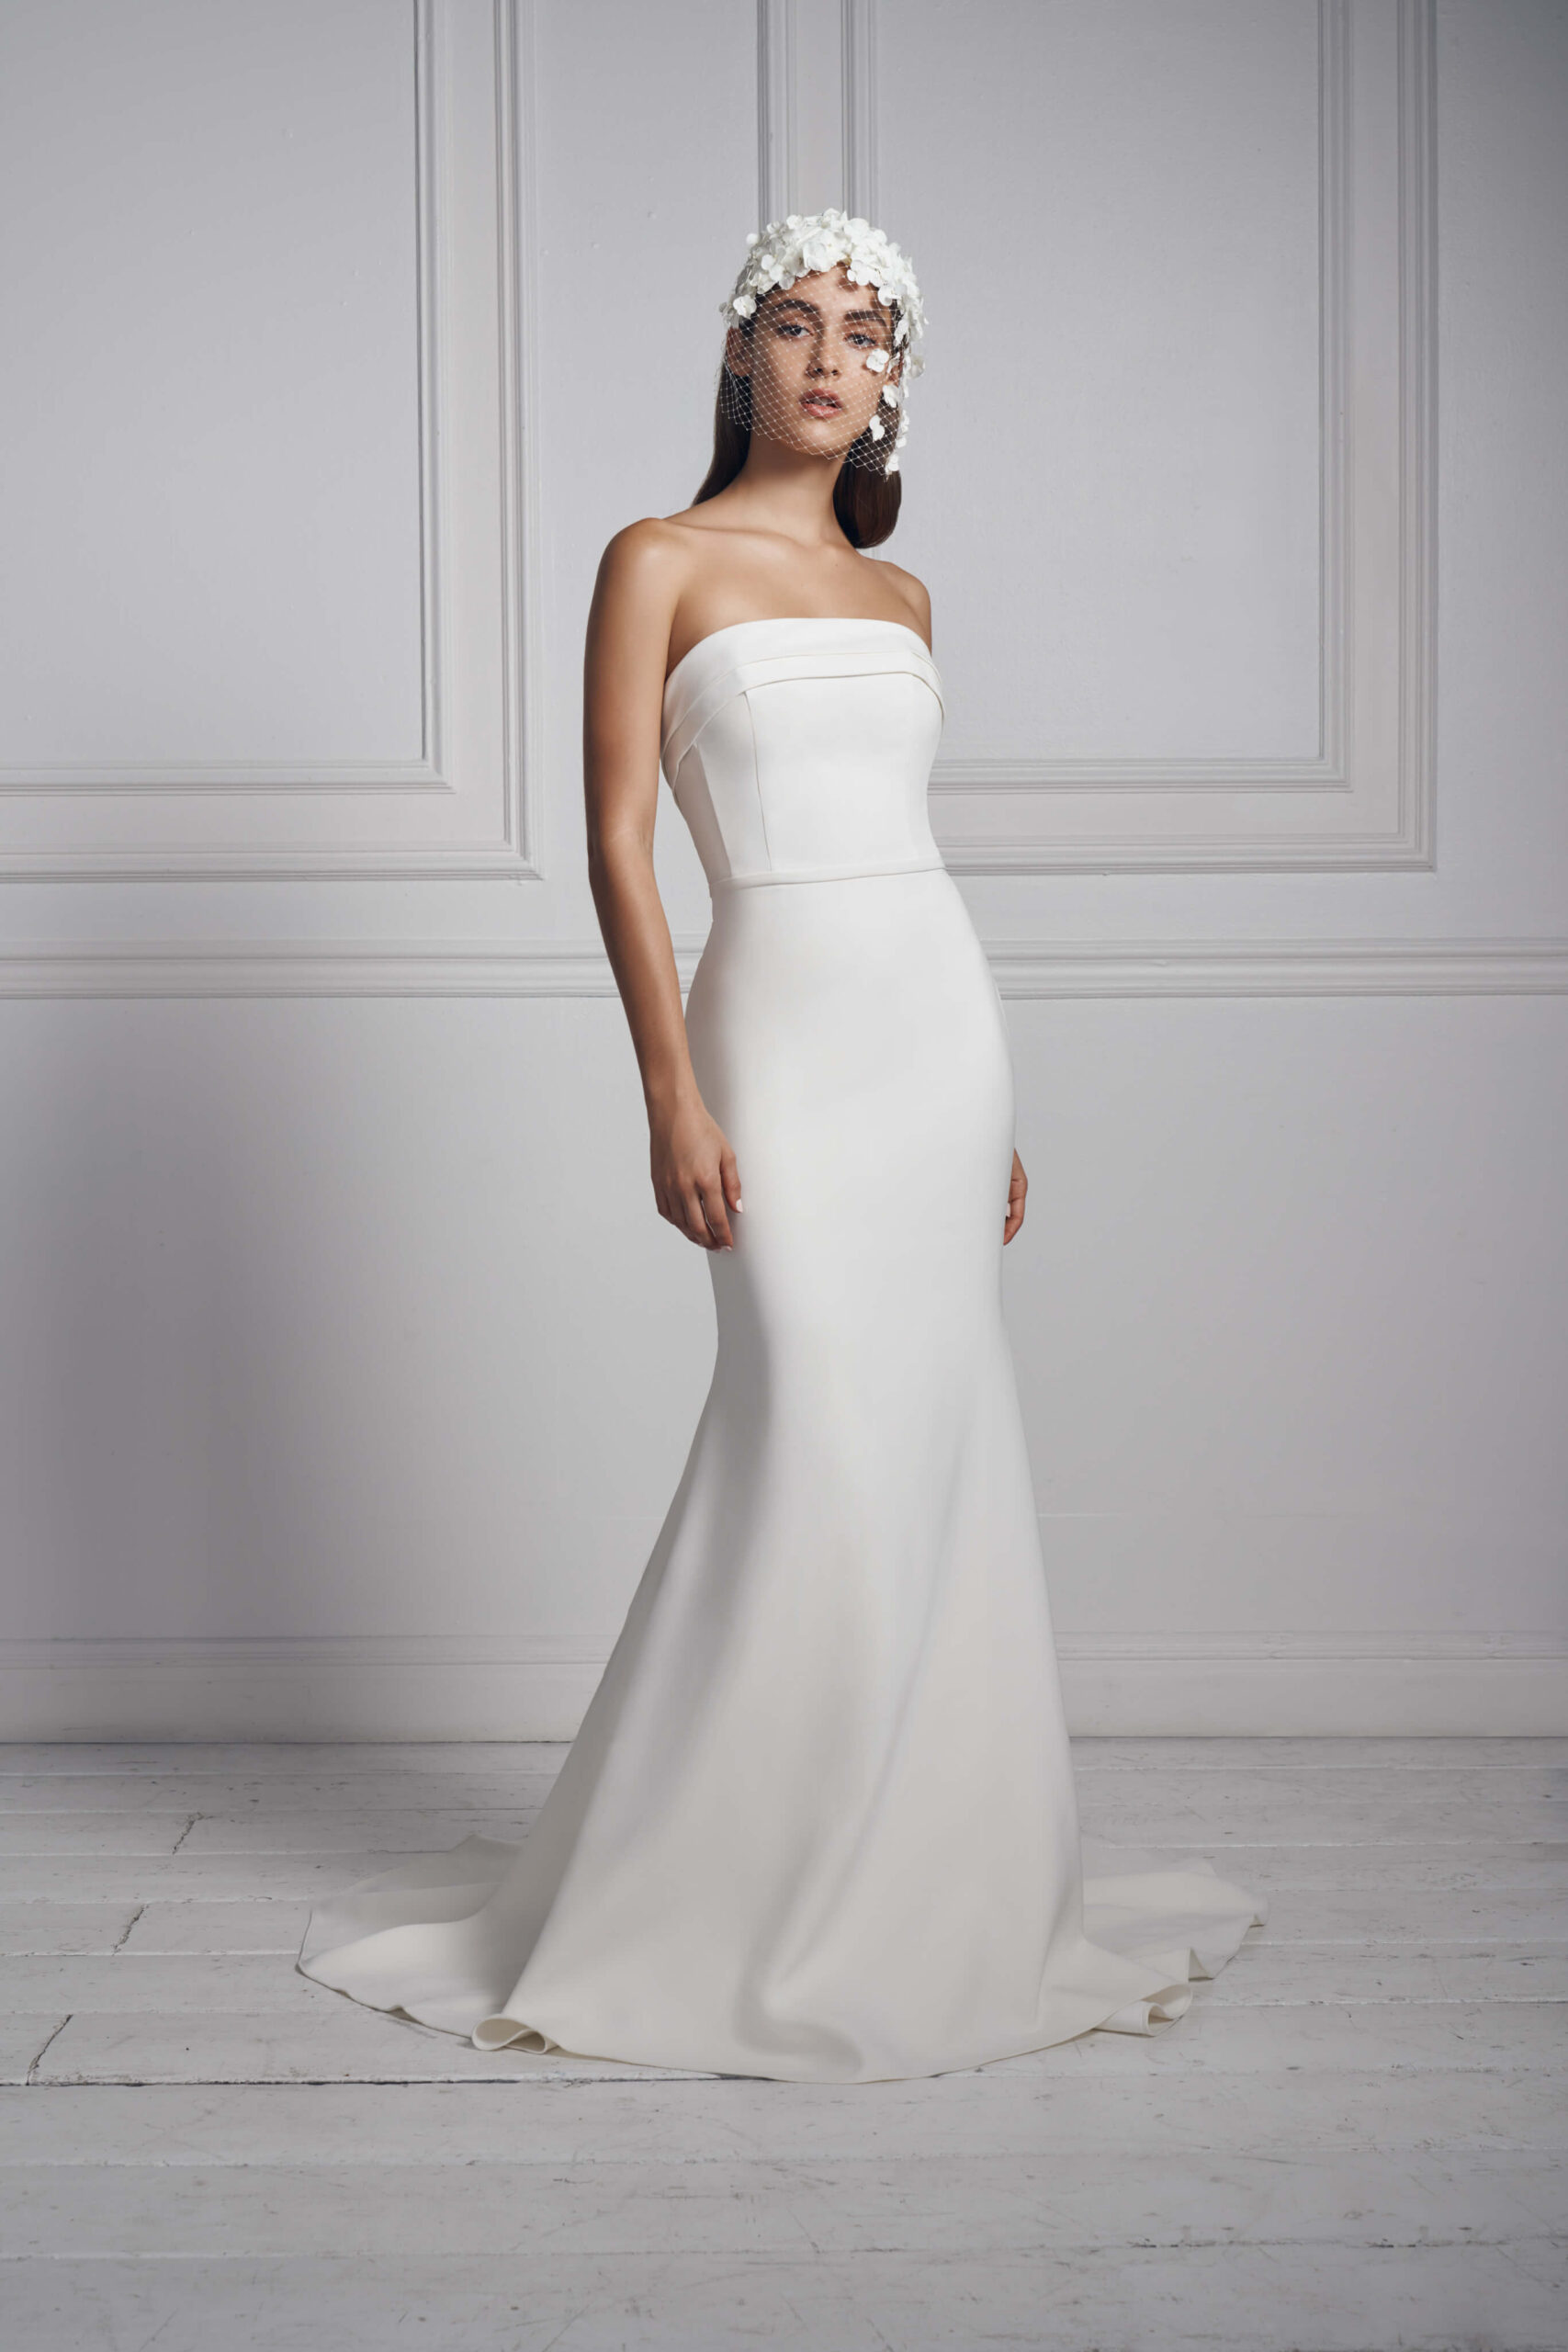 Anne Barge's columnar strapless bridal gown comes with arched pleated cuffs